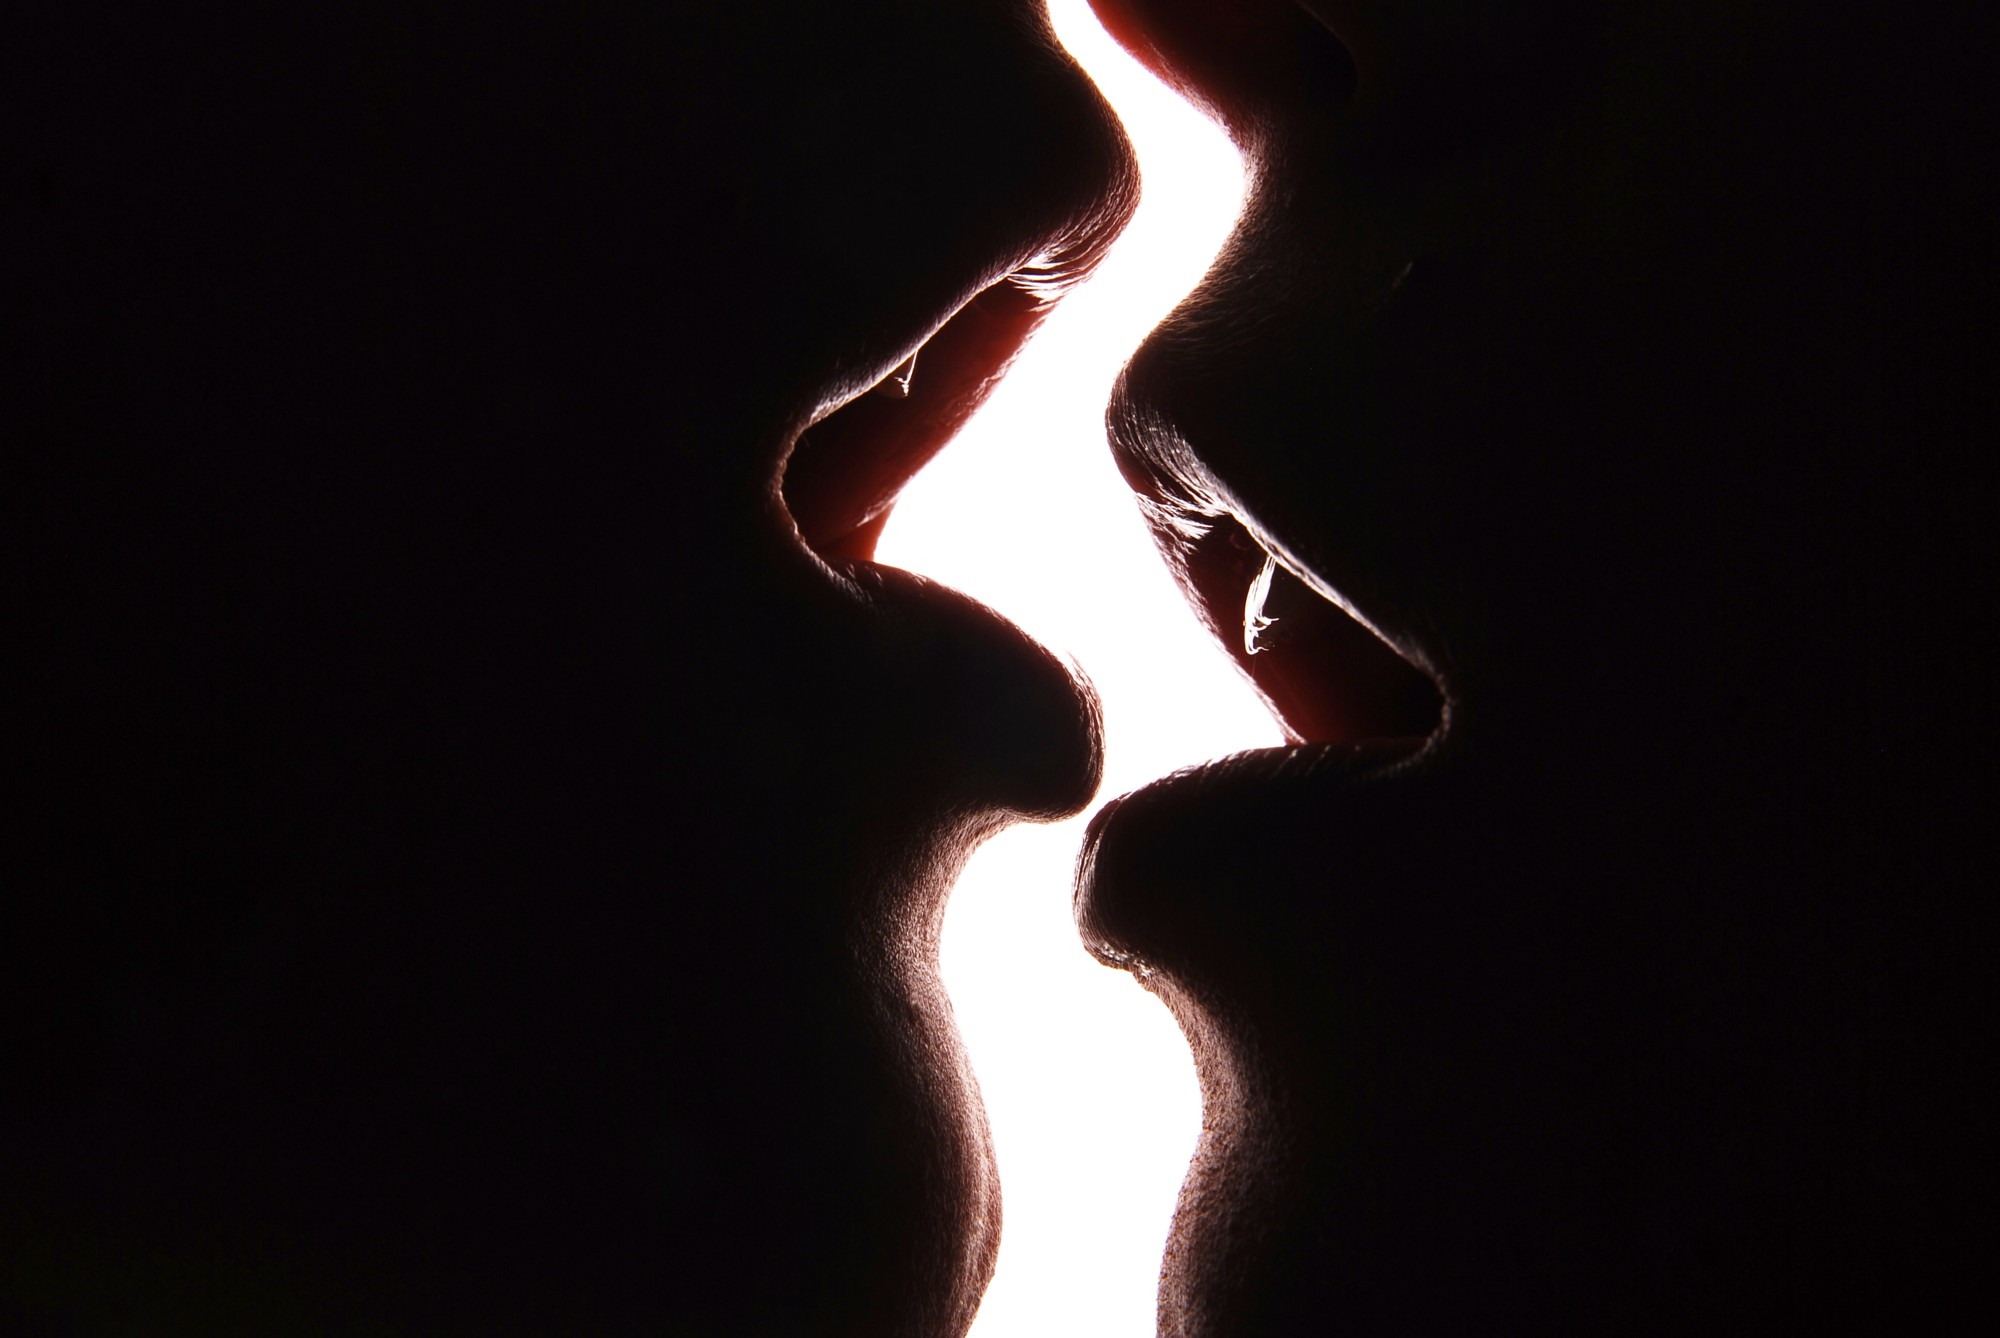 A close-up of a pair of mouths, almost touching. The are silhouetted black against a sliver of white background between them. Their lips are parted, hungry, wanting to touch but held back.